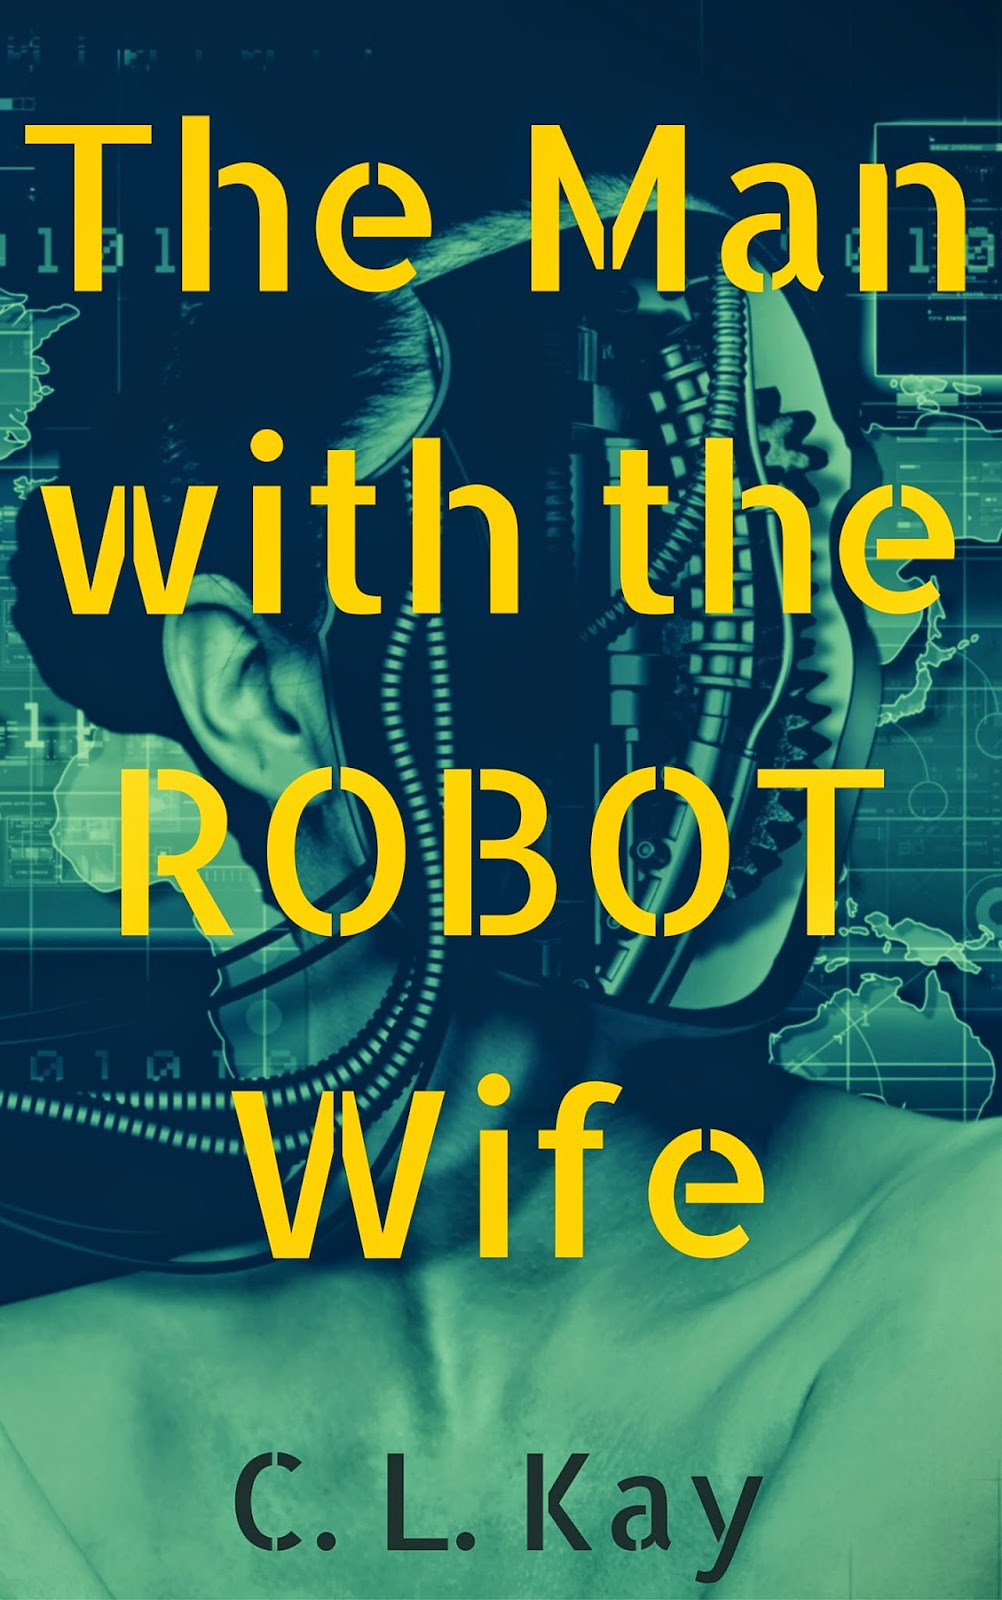 clkaywriter.com C. L. Kay The Man with the Robot Wife Book Cover